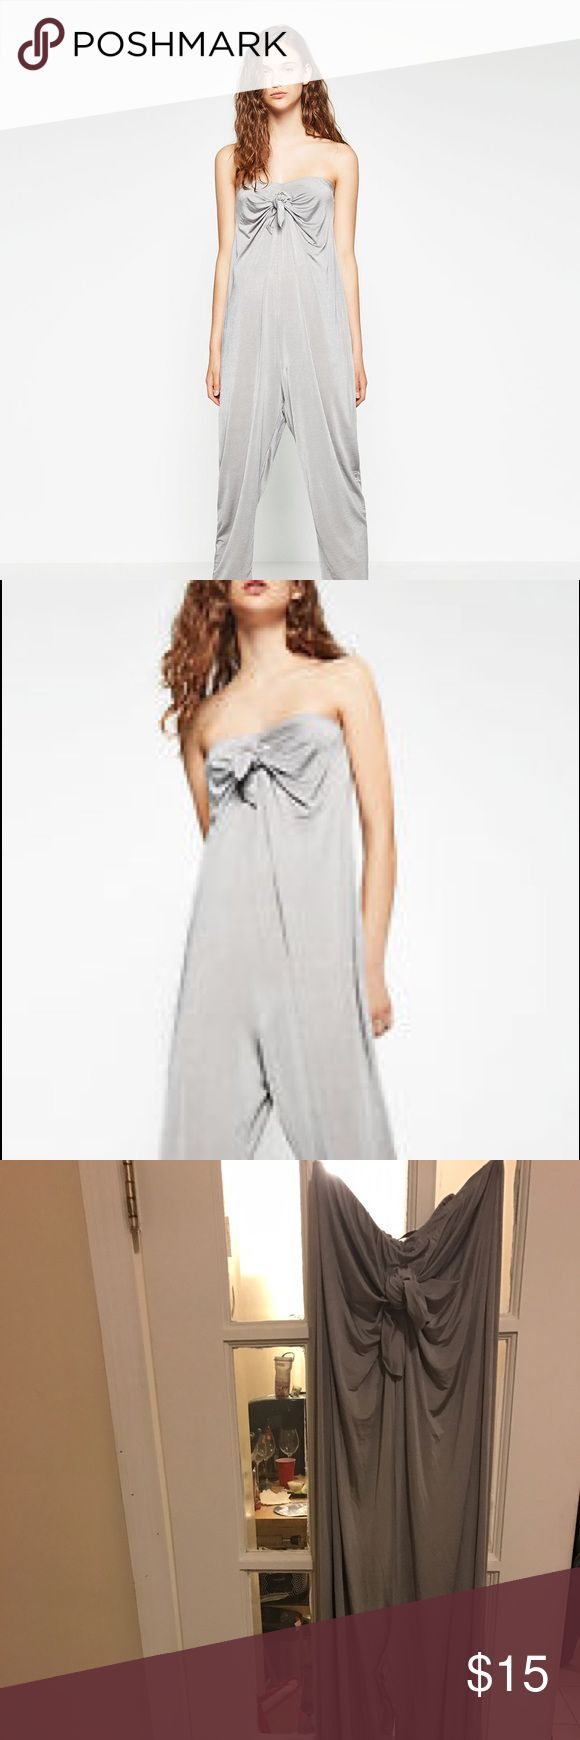 ZARA Silver jumpsuit with Bow detail...worn once Chic and comfy silver jumpsuit! I love this piece. I wore it once and got so many compliments!!!! Zara Pants Jumpsuits & Rompers